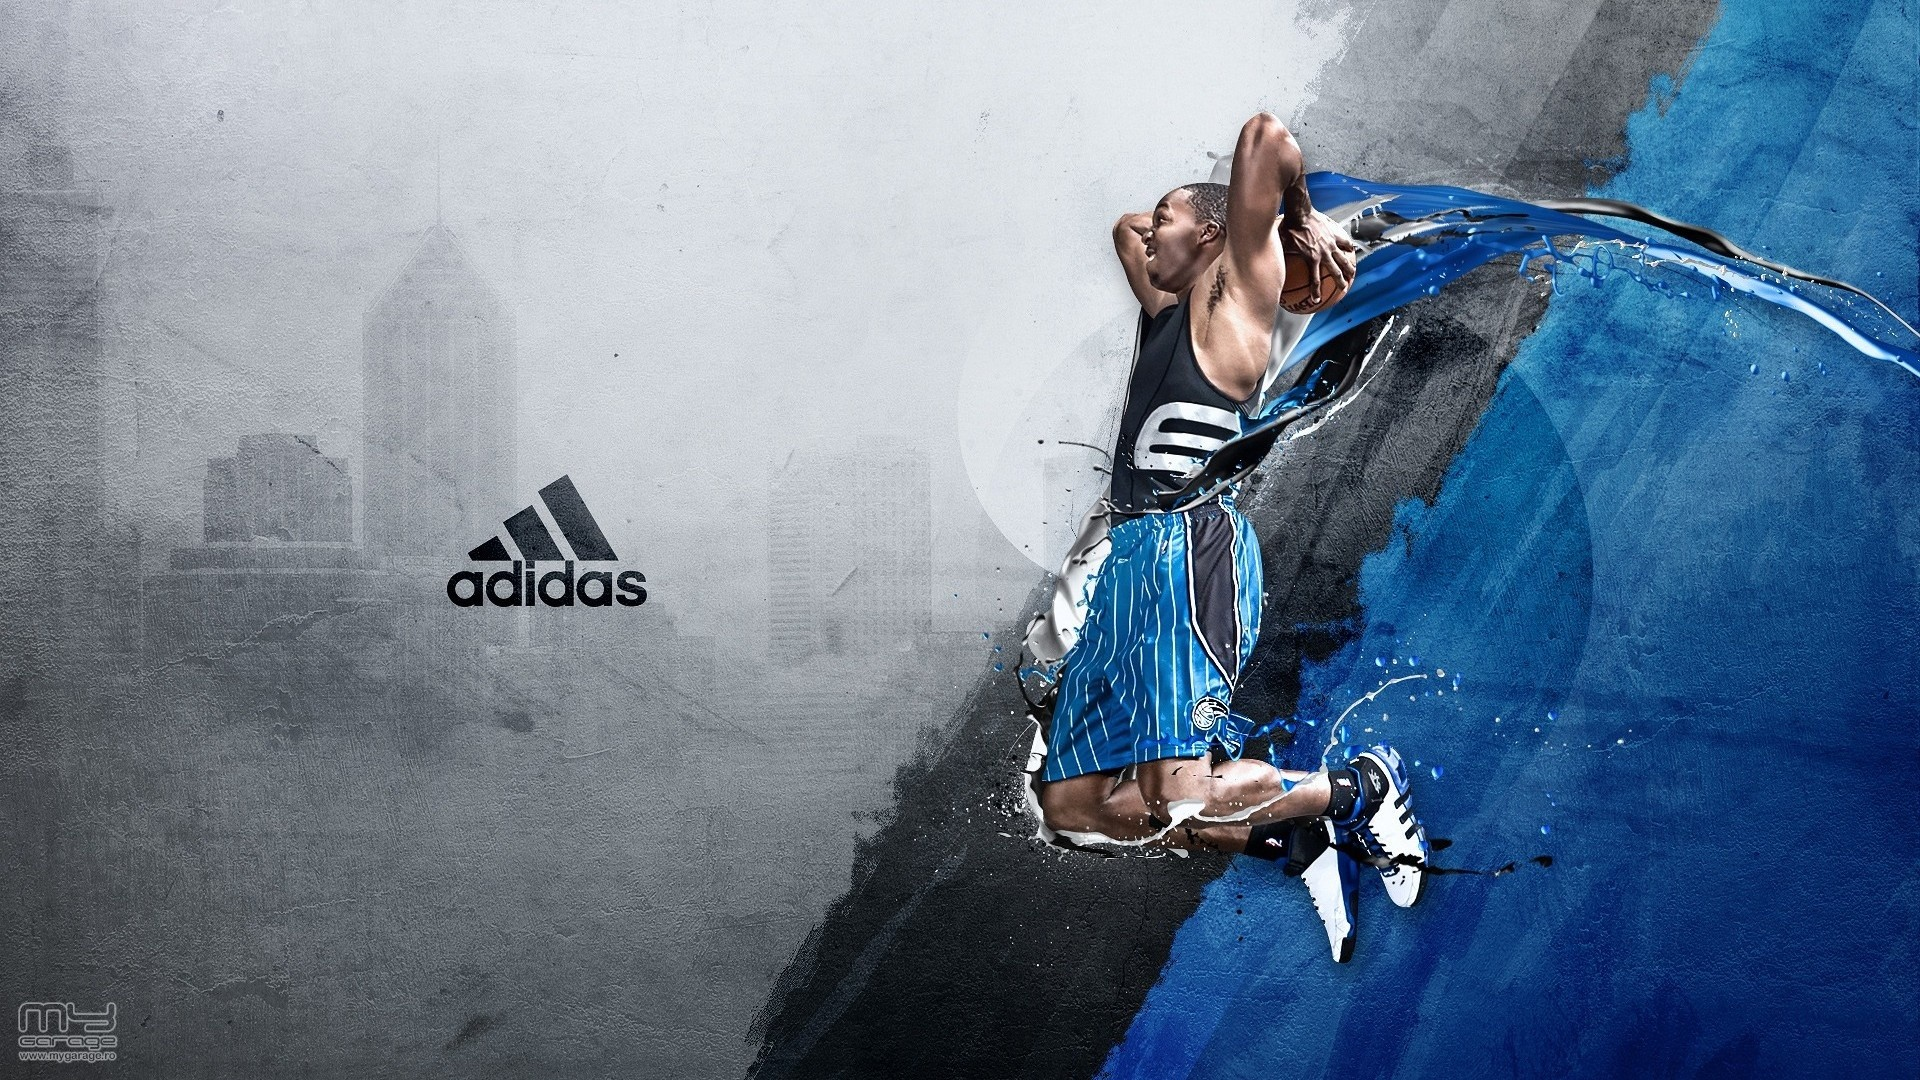 Adidas HD Blue Wallpaper 1920x1080 HD Sport 1920x1080